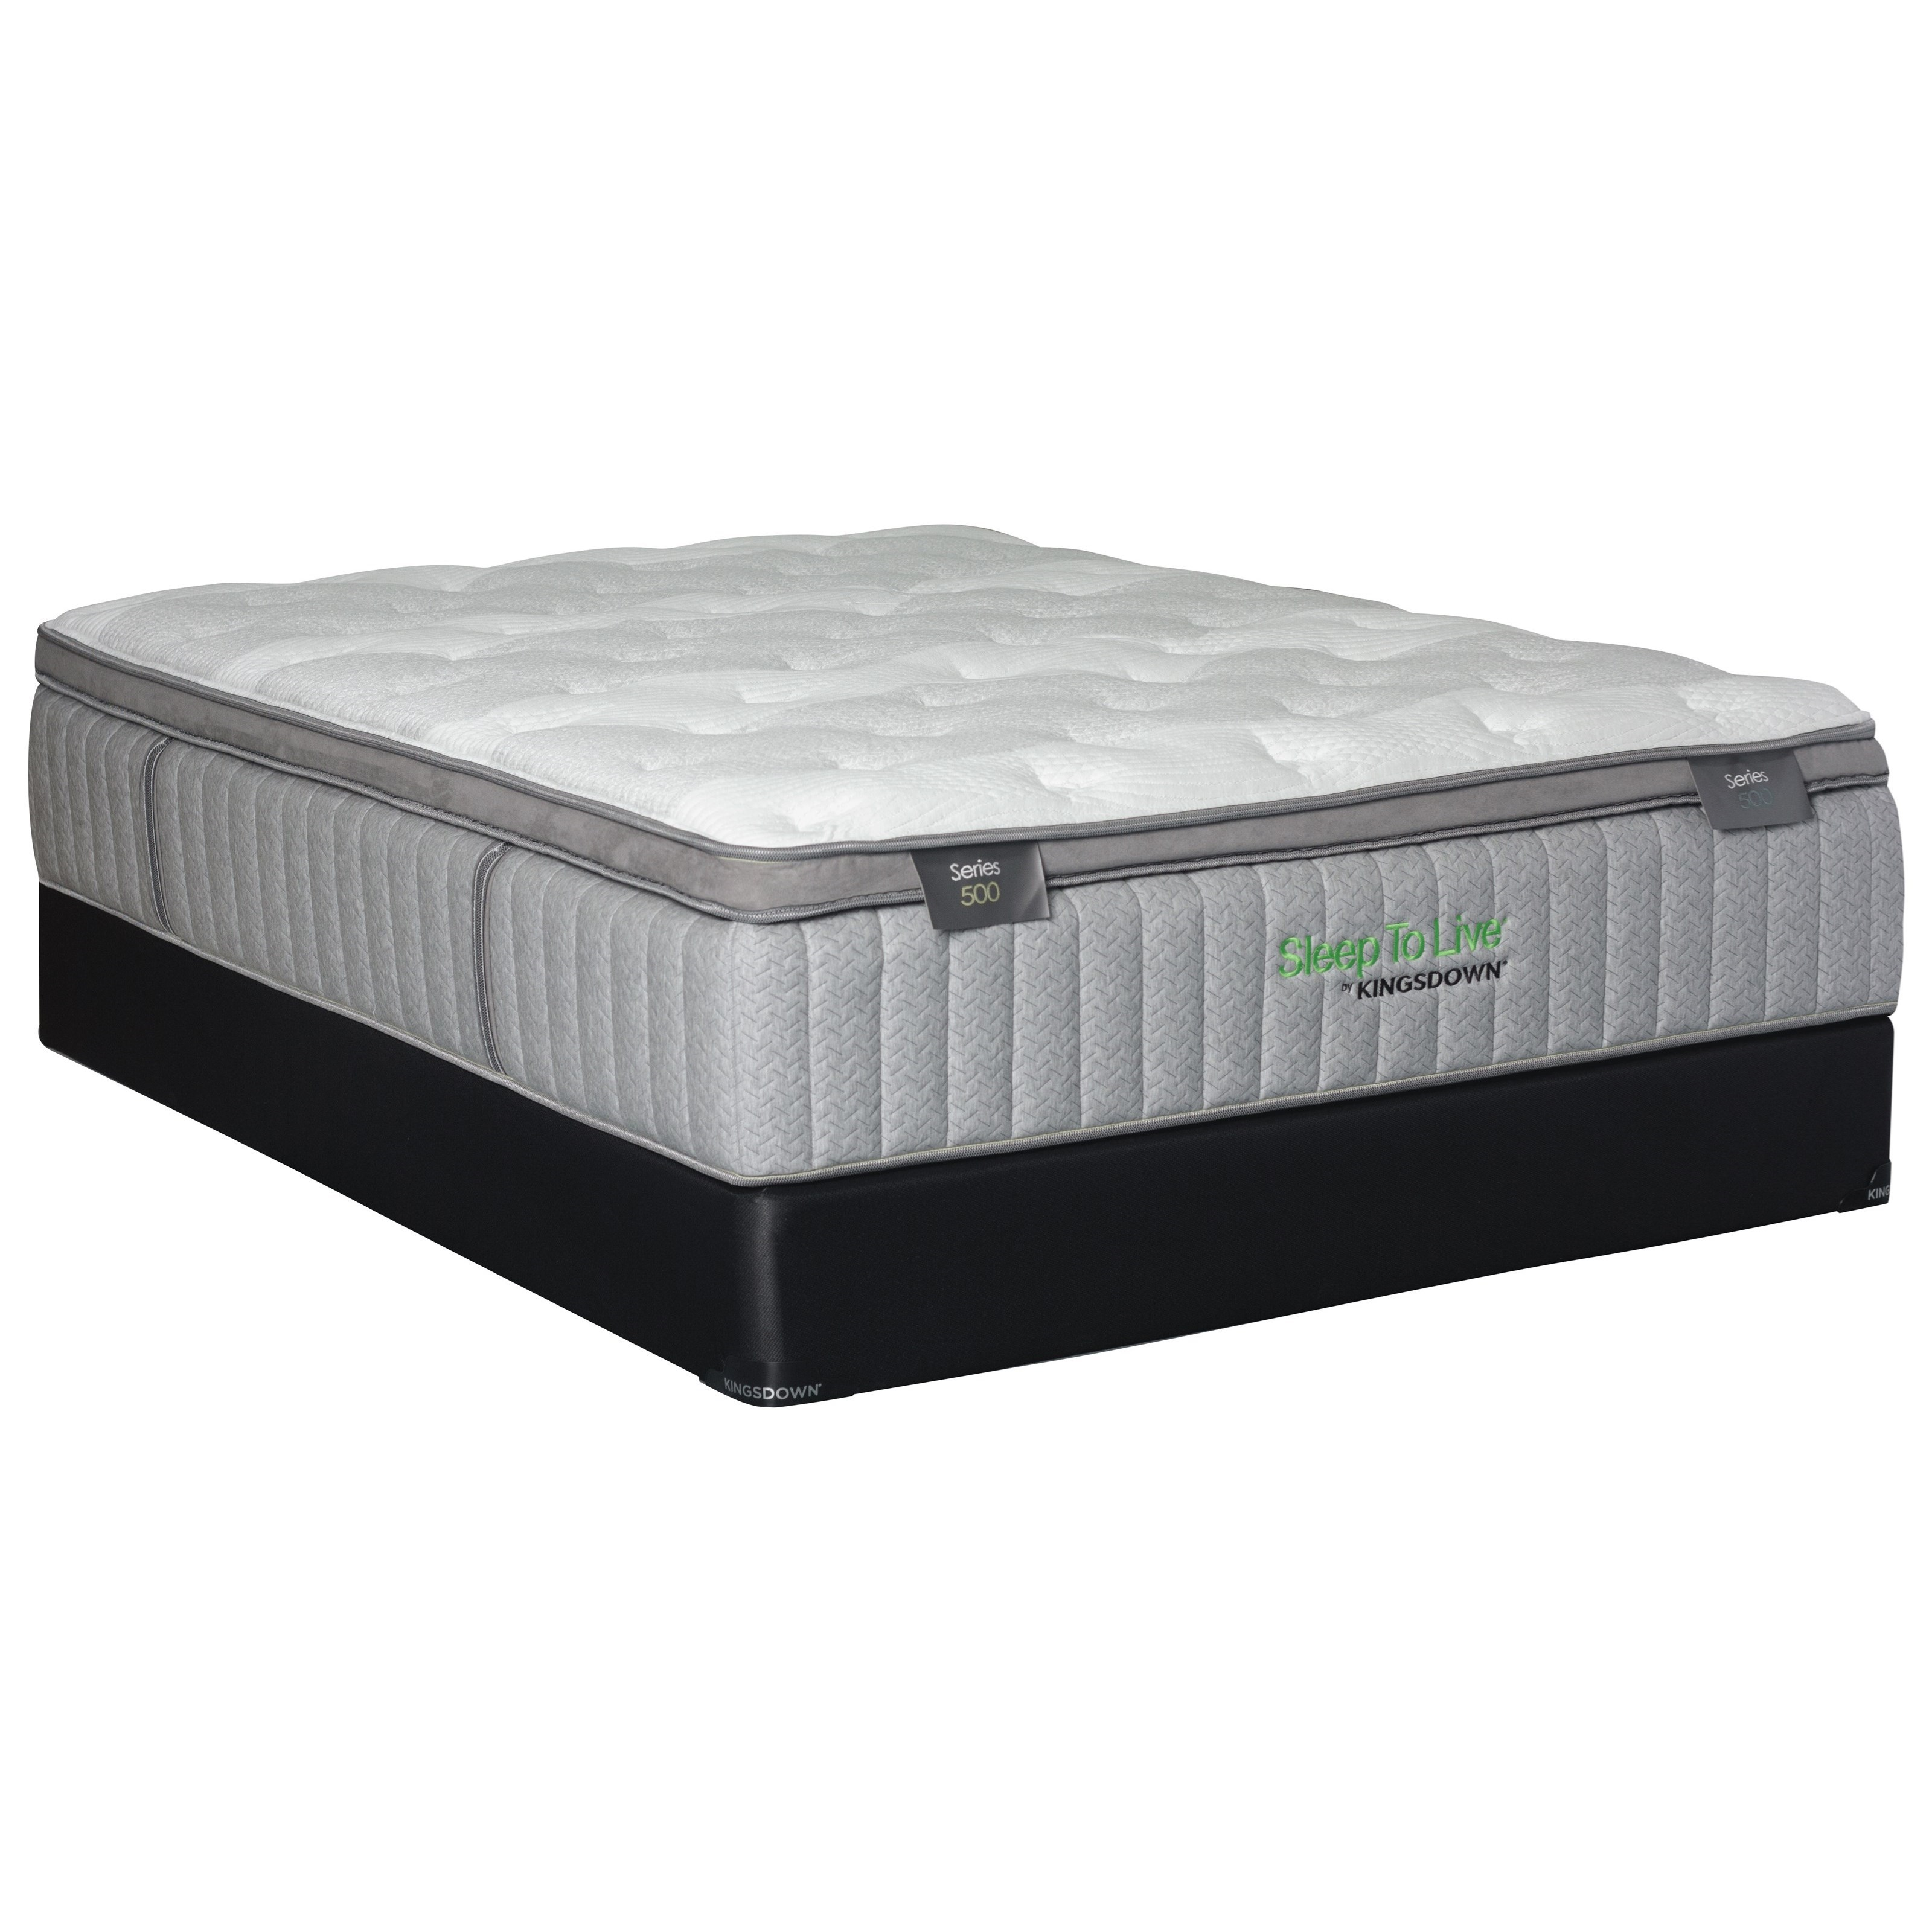 Sleep to Live Back Smart Series 500 Full Back Smart Series 500 LP Set - Item Number: 52062-500-F+BS1518XFD-F